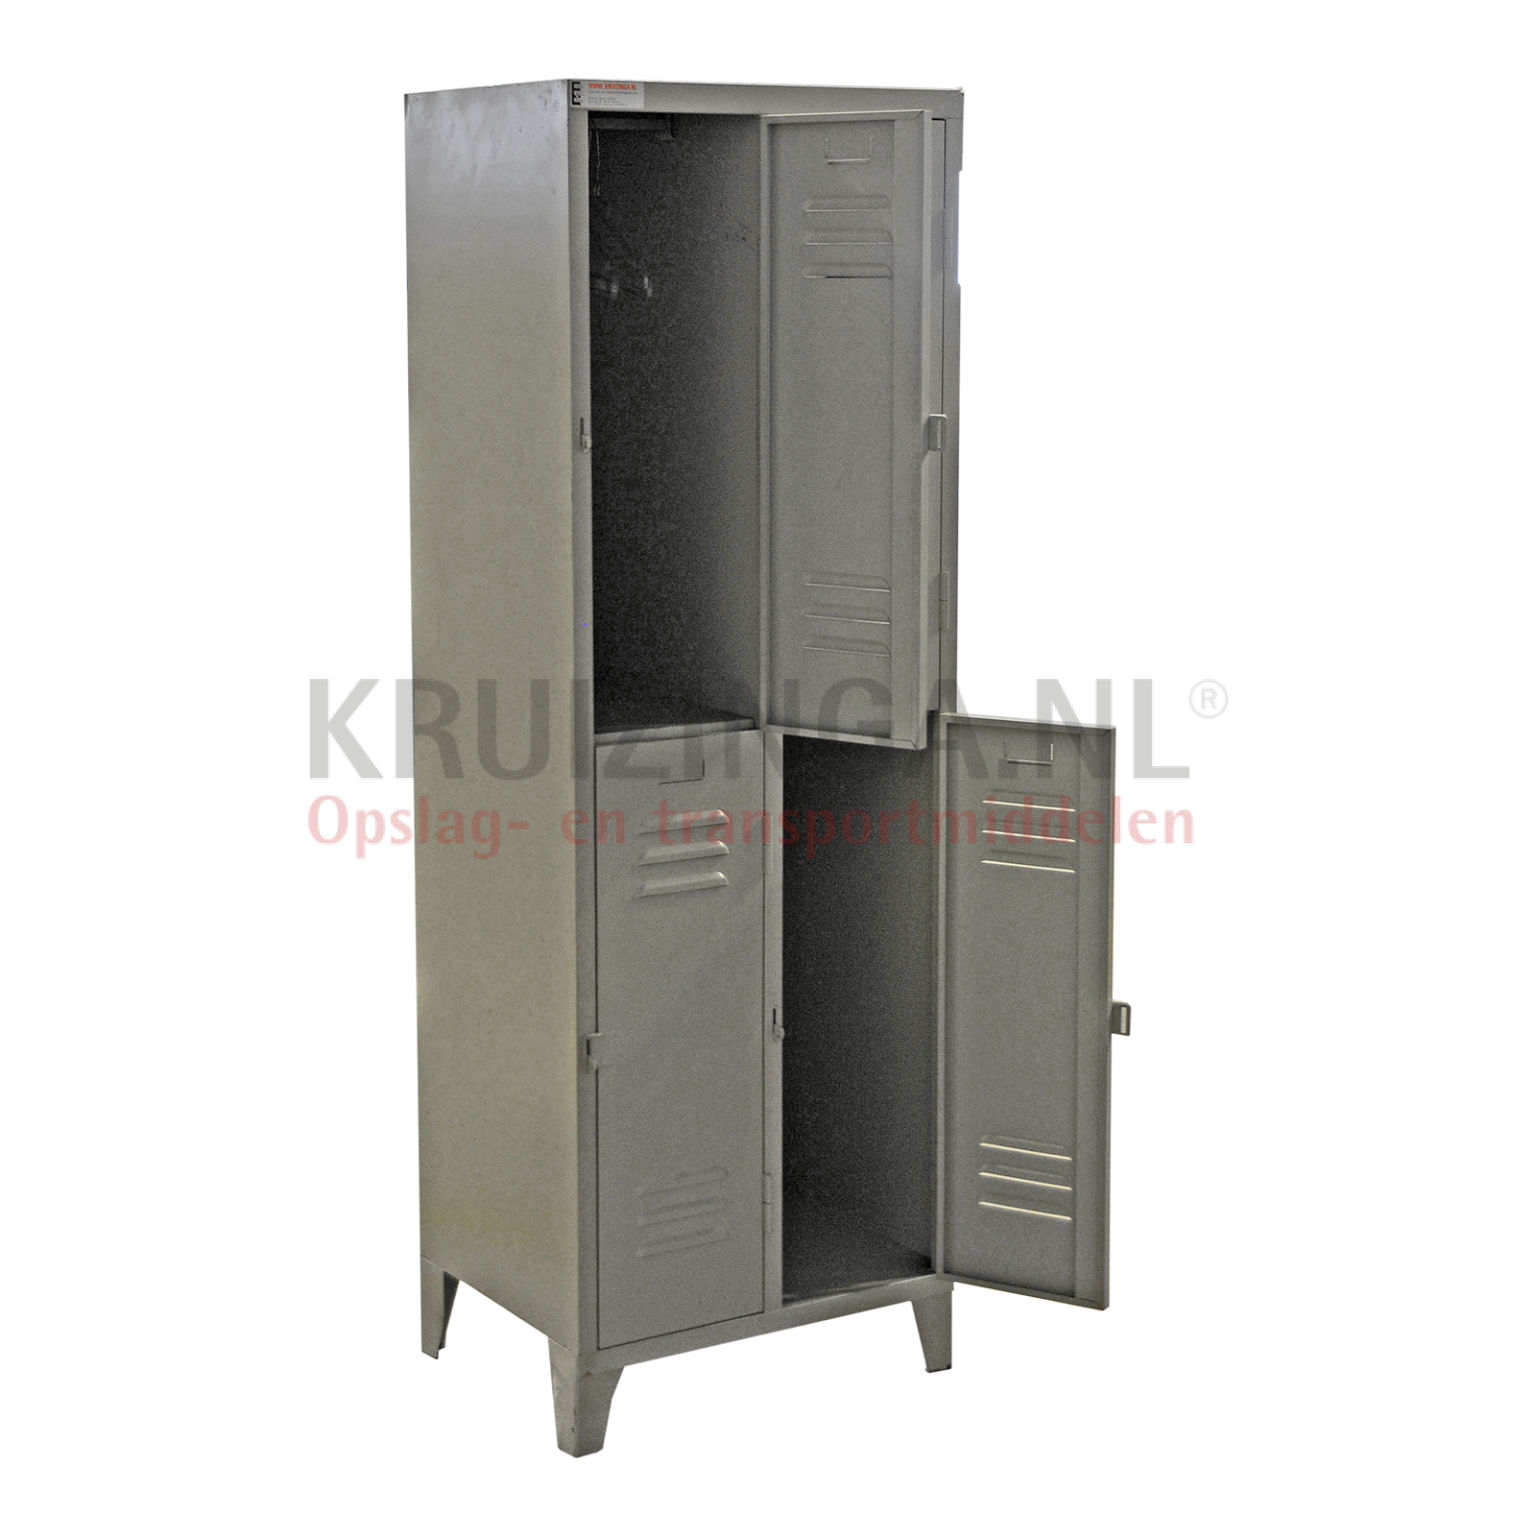 armoire casier 4 portes occasion 313 50 frais de livraison inclus. Black Bedroom Furniture Sets. Home Design Ideas